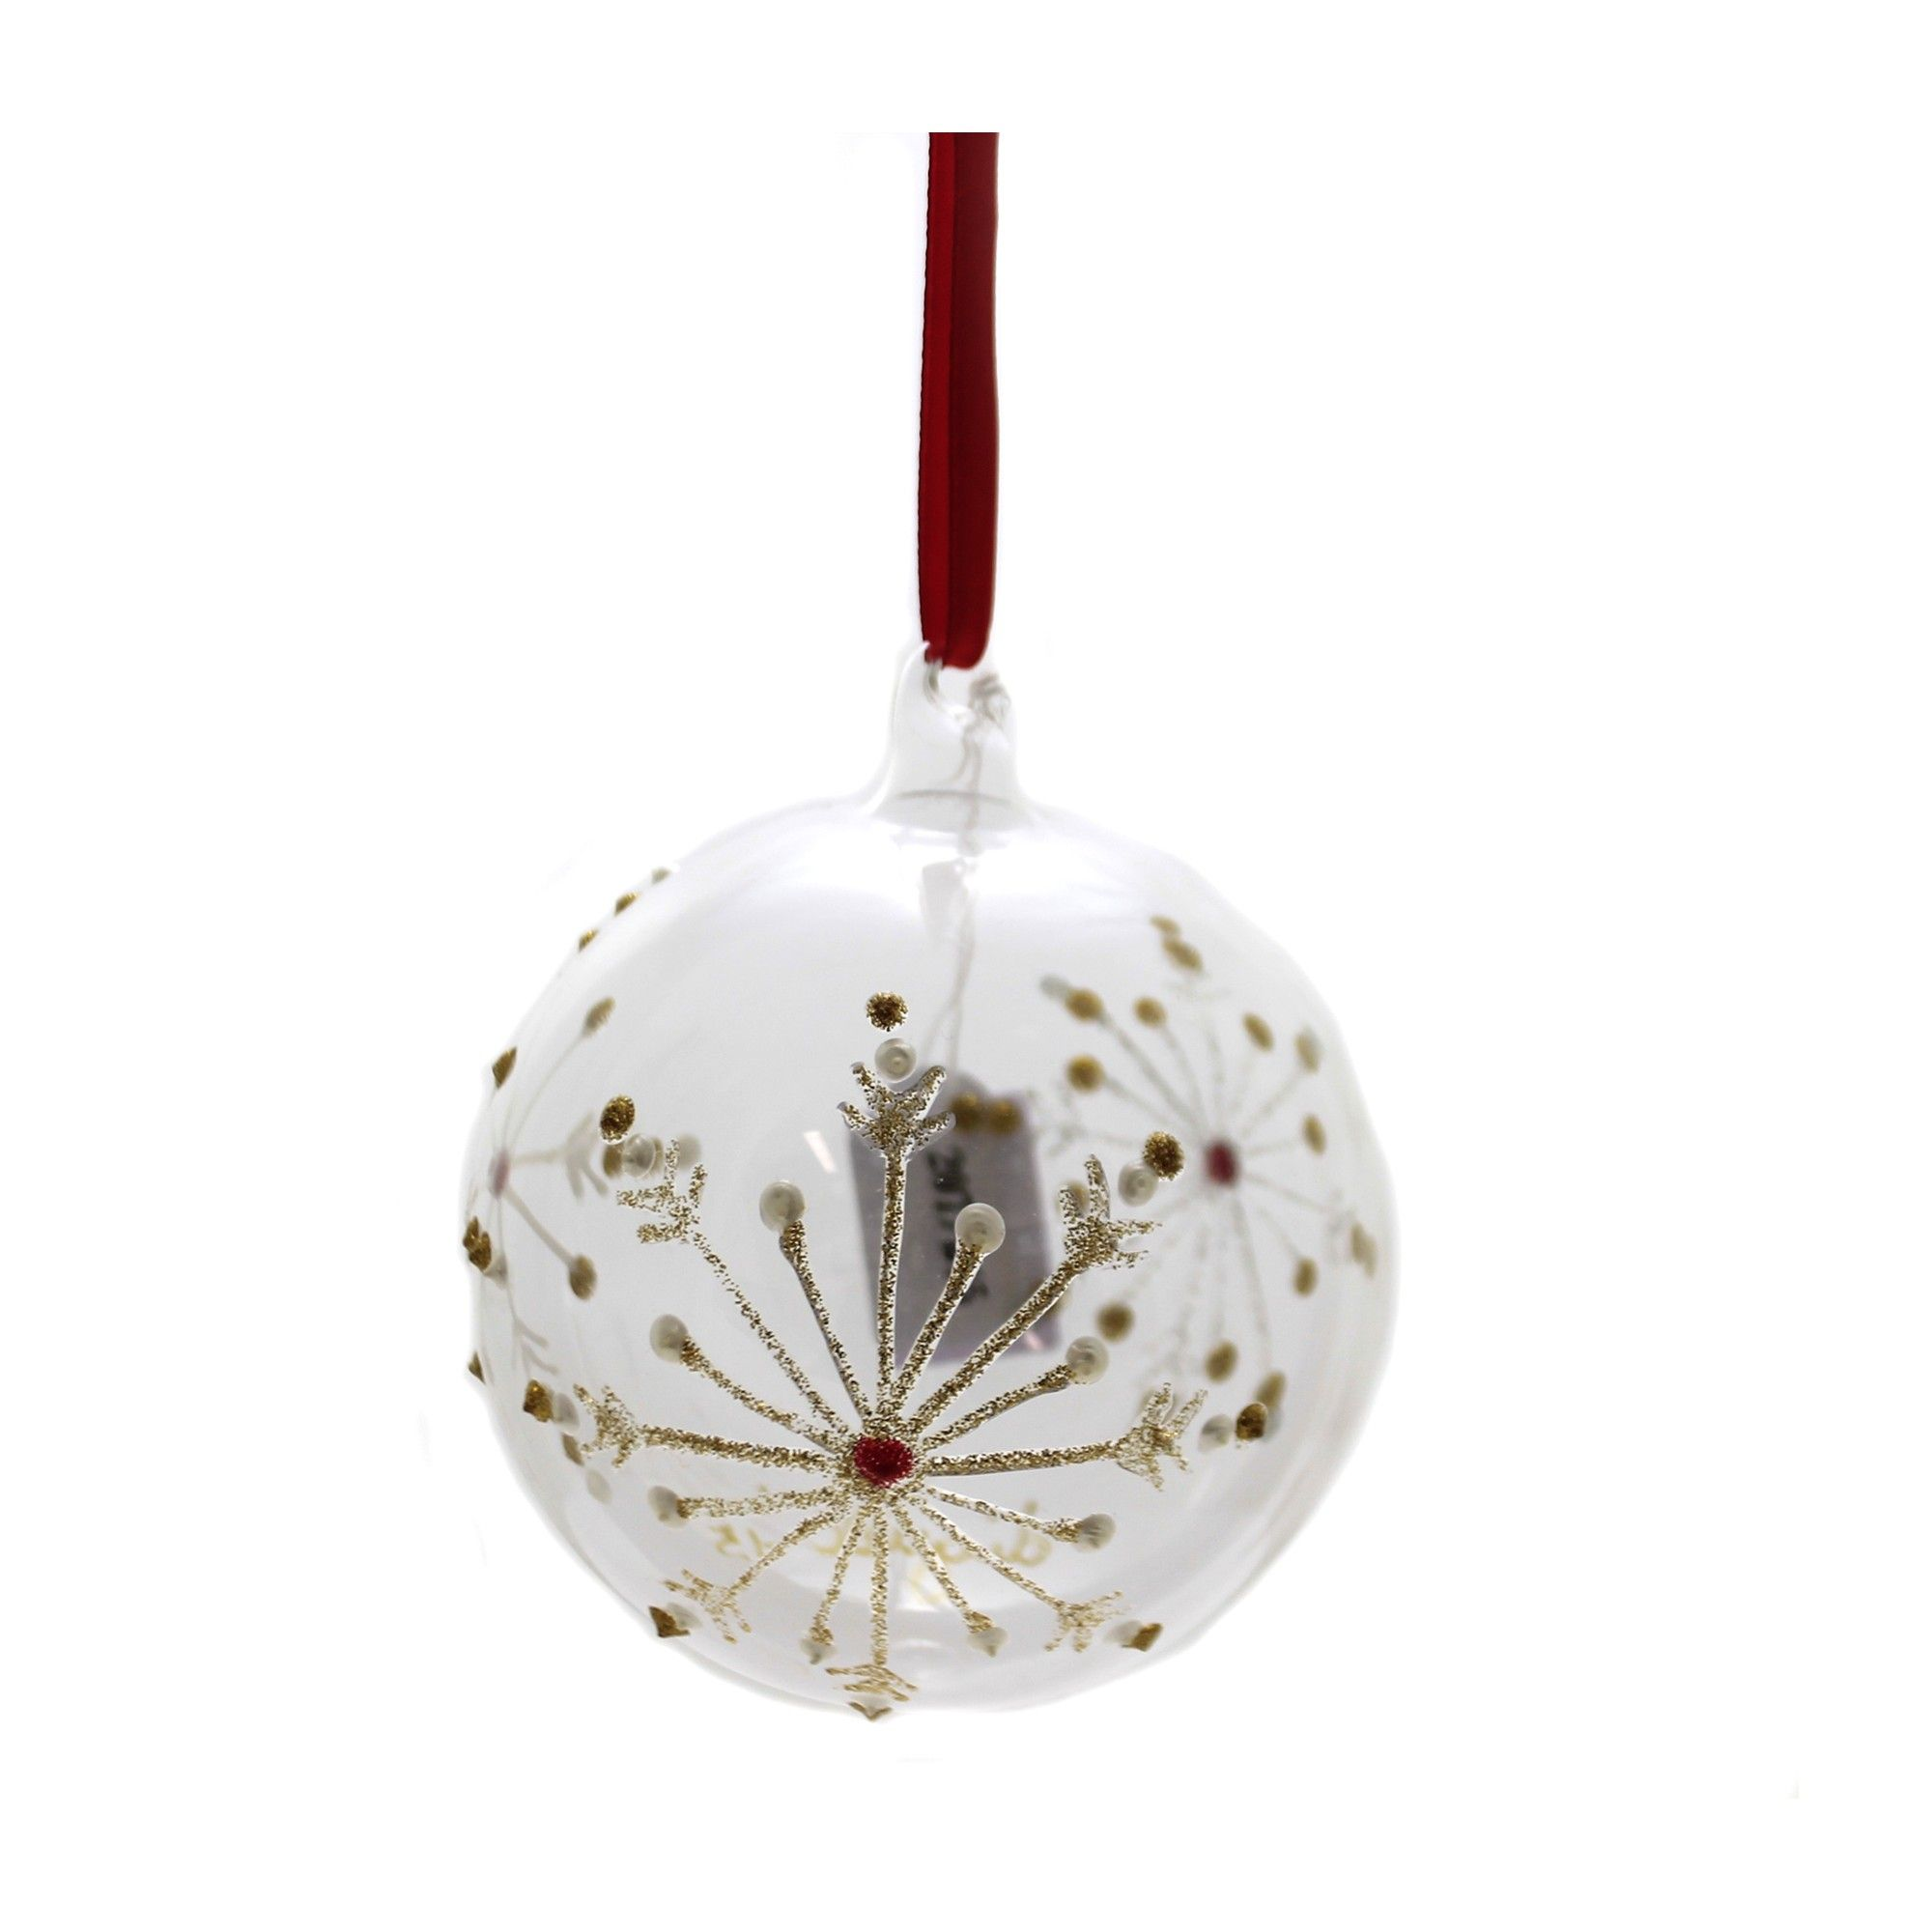 Holiday Ornaments 4 0 Snowflakes Italian Tree Ornaments In 2020 Hand Painted Bauble Ornaments How To Make Ornaments